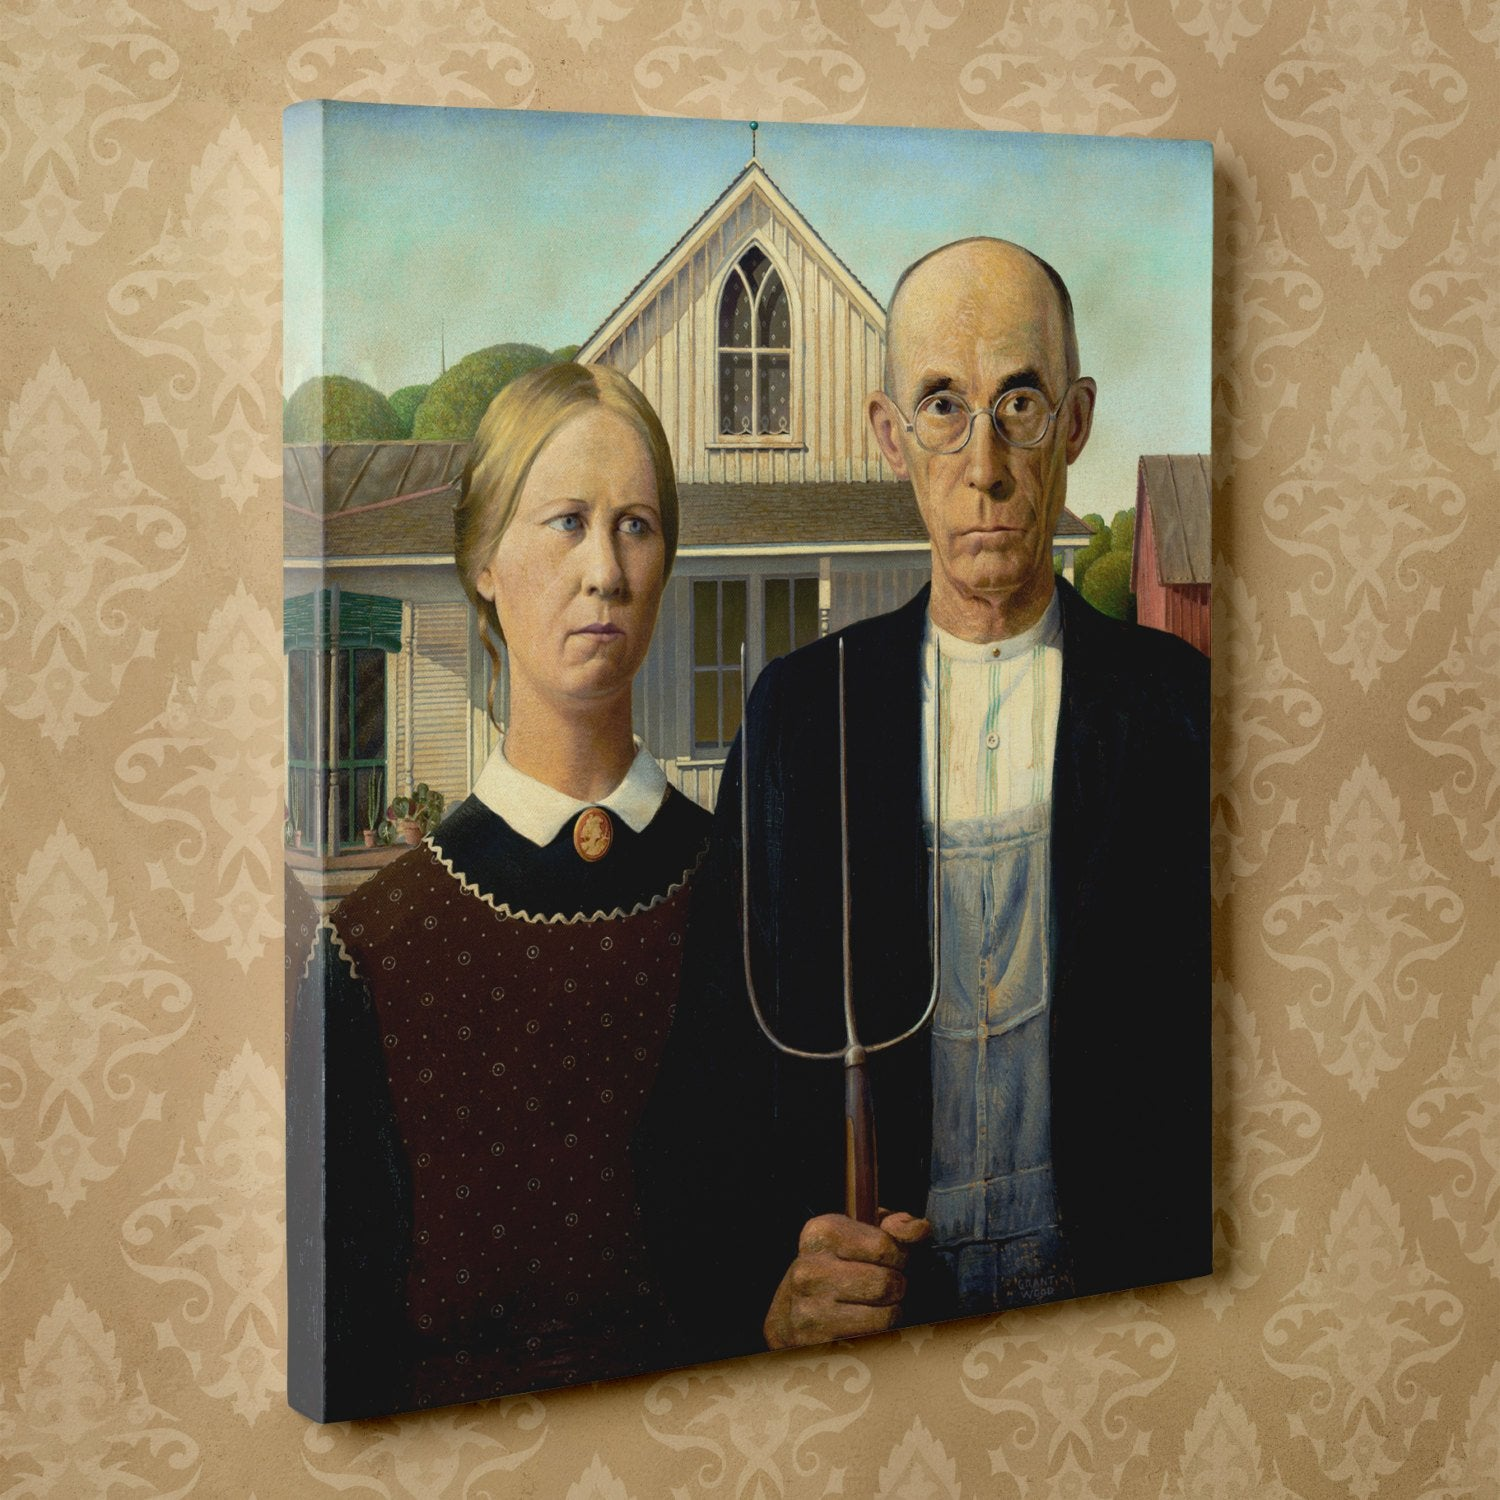 "American Gothic by Grant Wood (24"" x 36"") - Canvas Wrap Print"